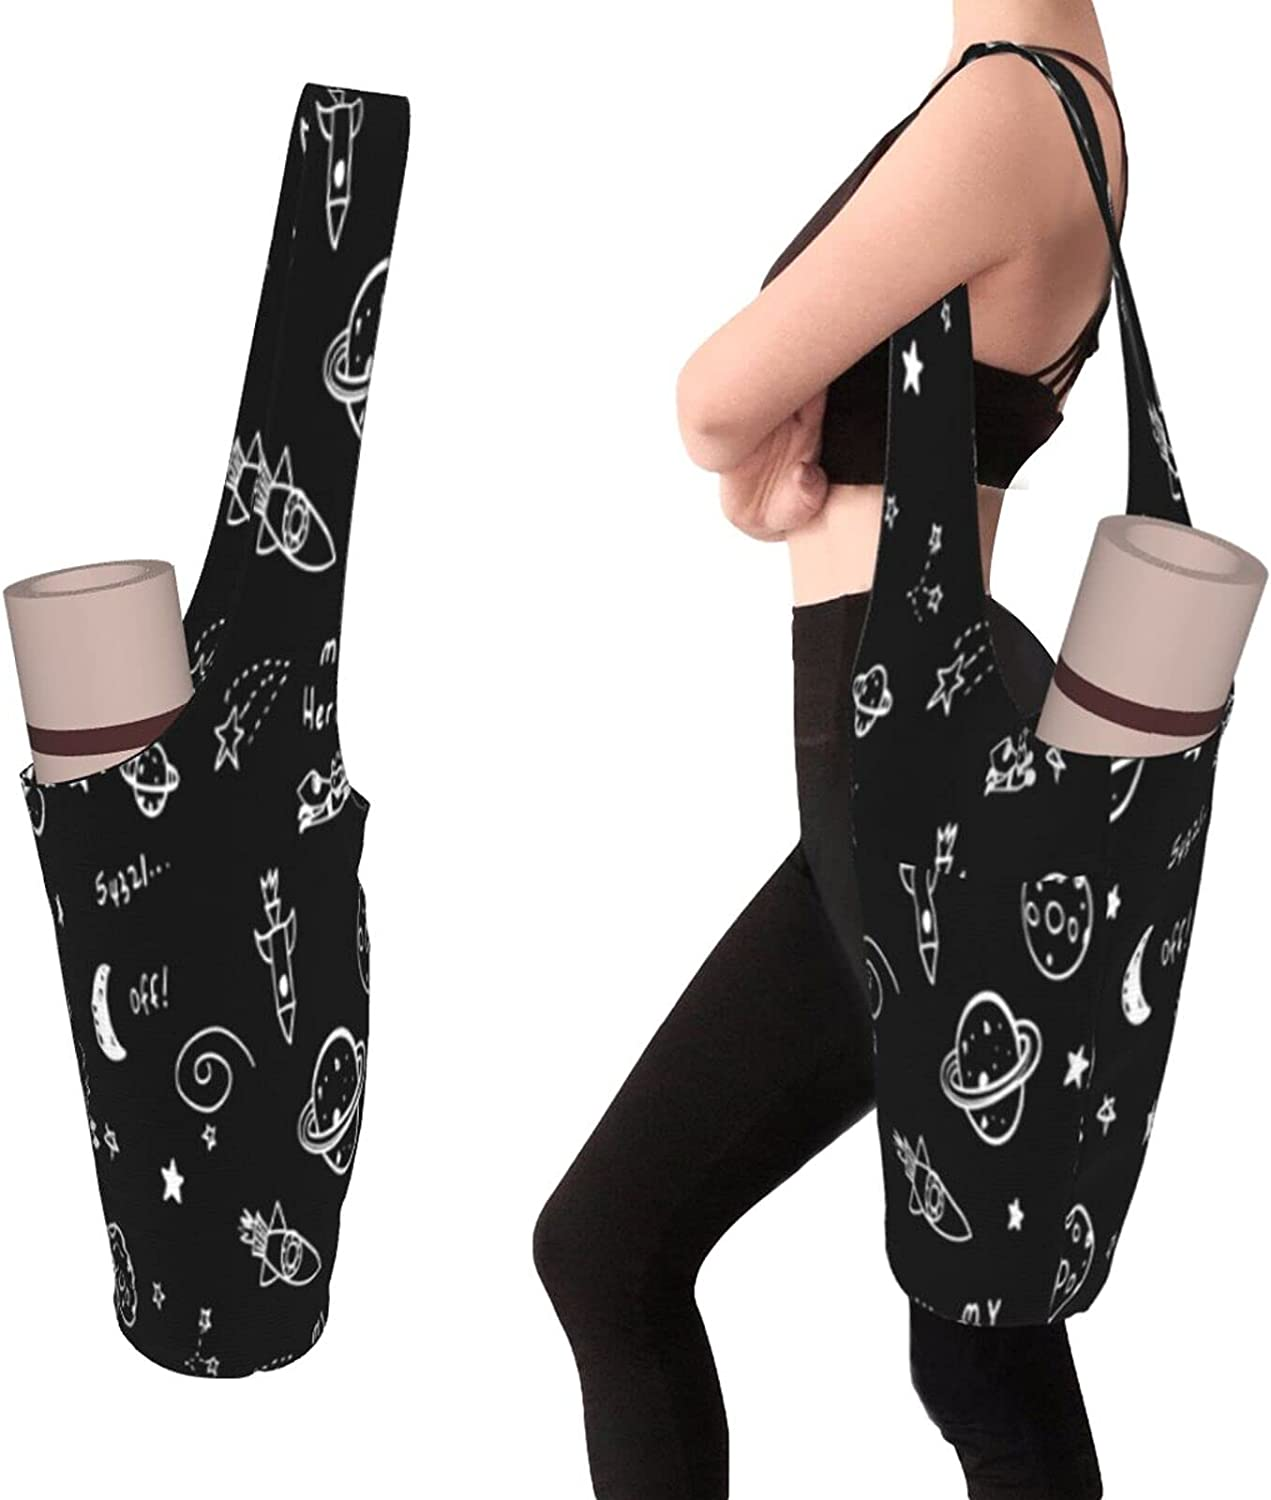 Yoga Mats Bag With Pockets Size Thick Access Large Men Oklahoma City Mall Discount mail order